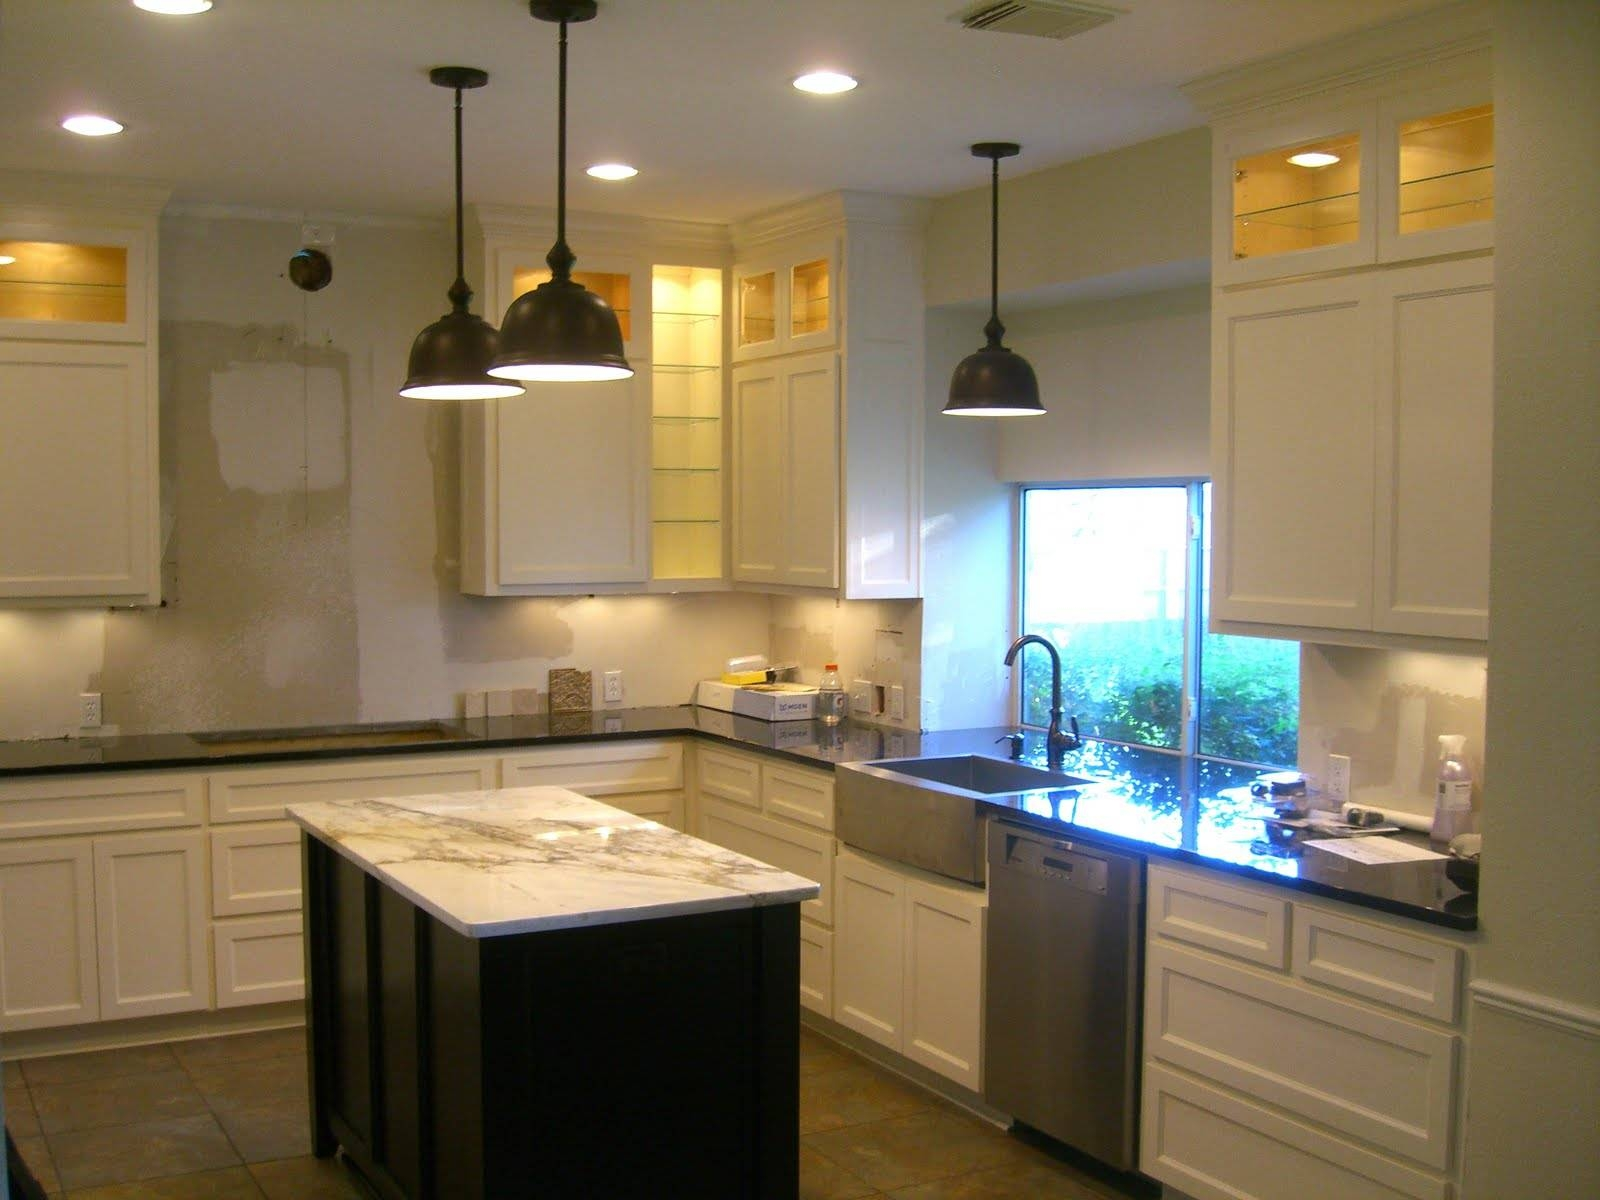 Single Pendant Lighting For Kitchen Island On With Hd Resolution inside Single Pendant Lights For Kitchen Island (Image 15 of 15)